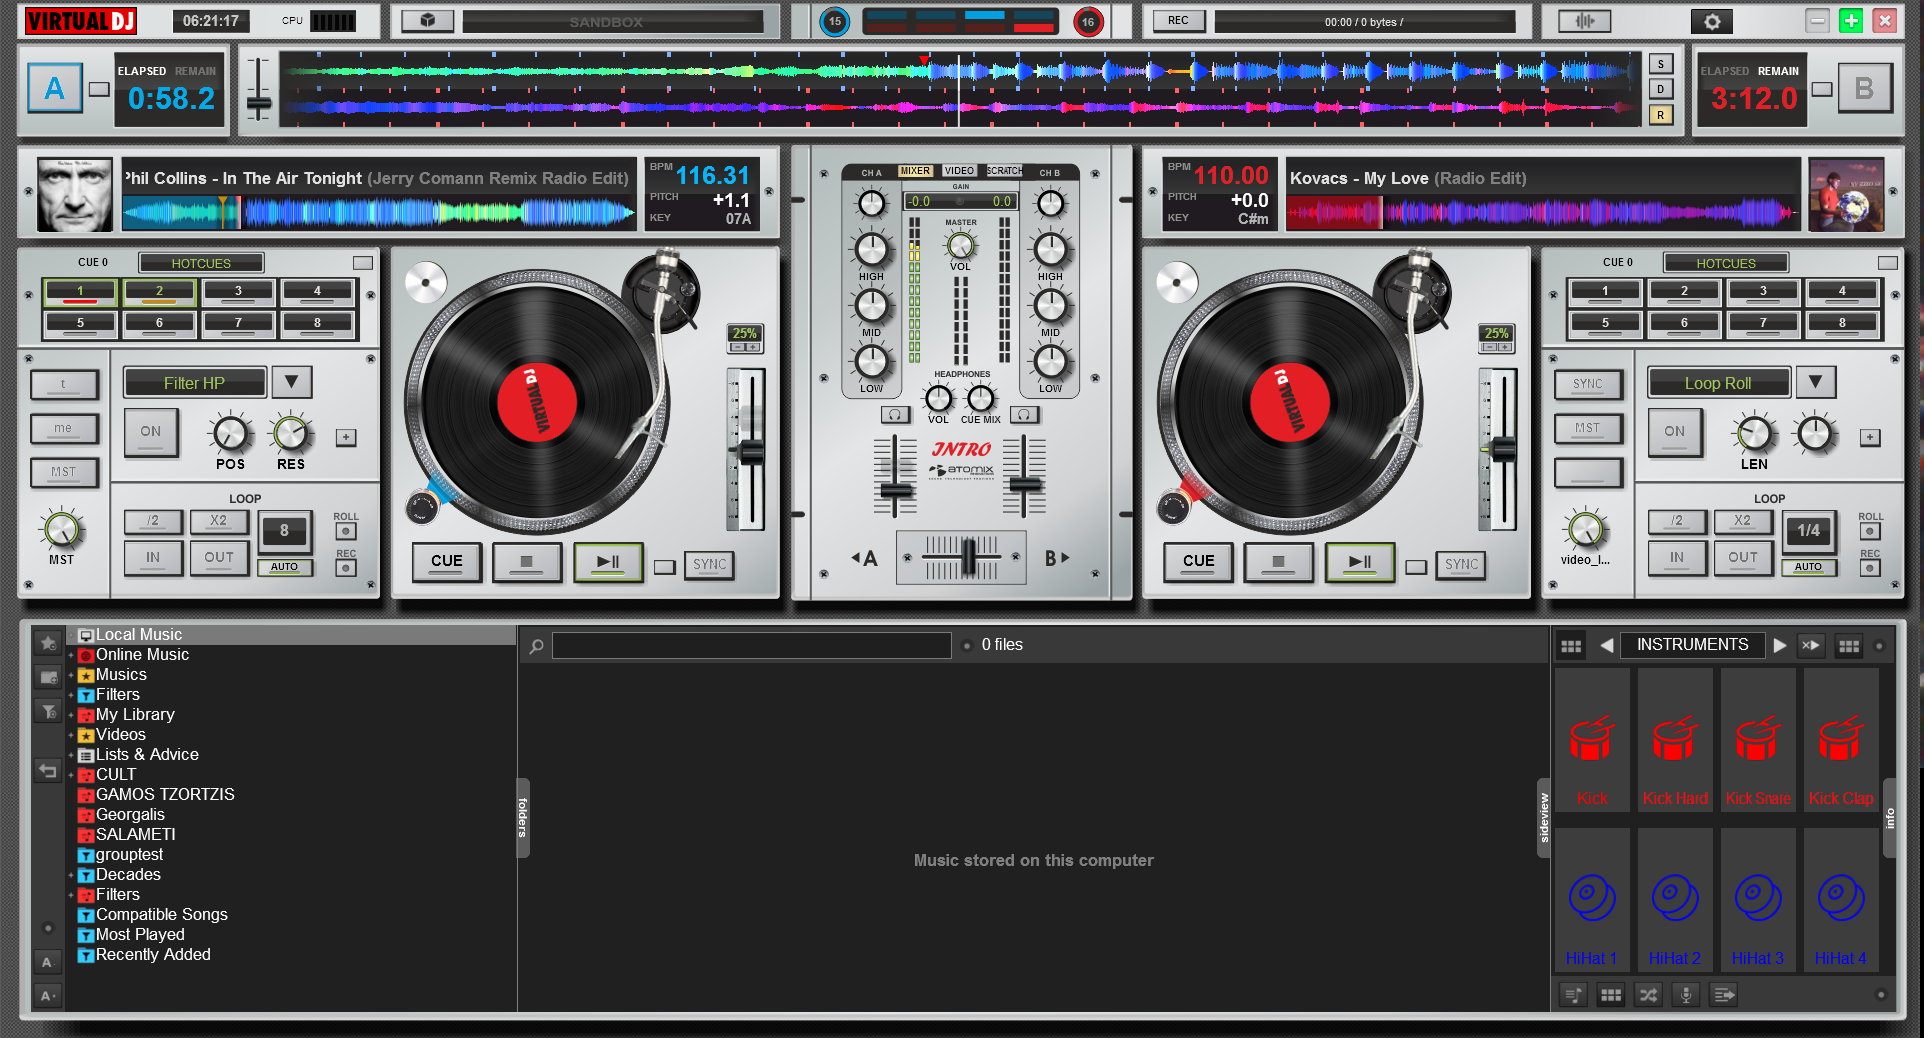 Dj Software Virtualdj Download Addons